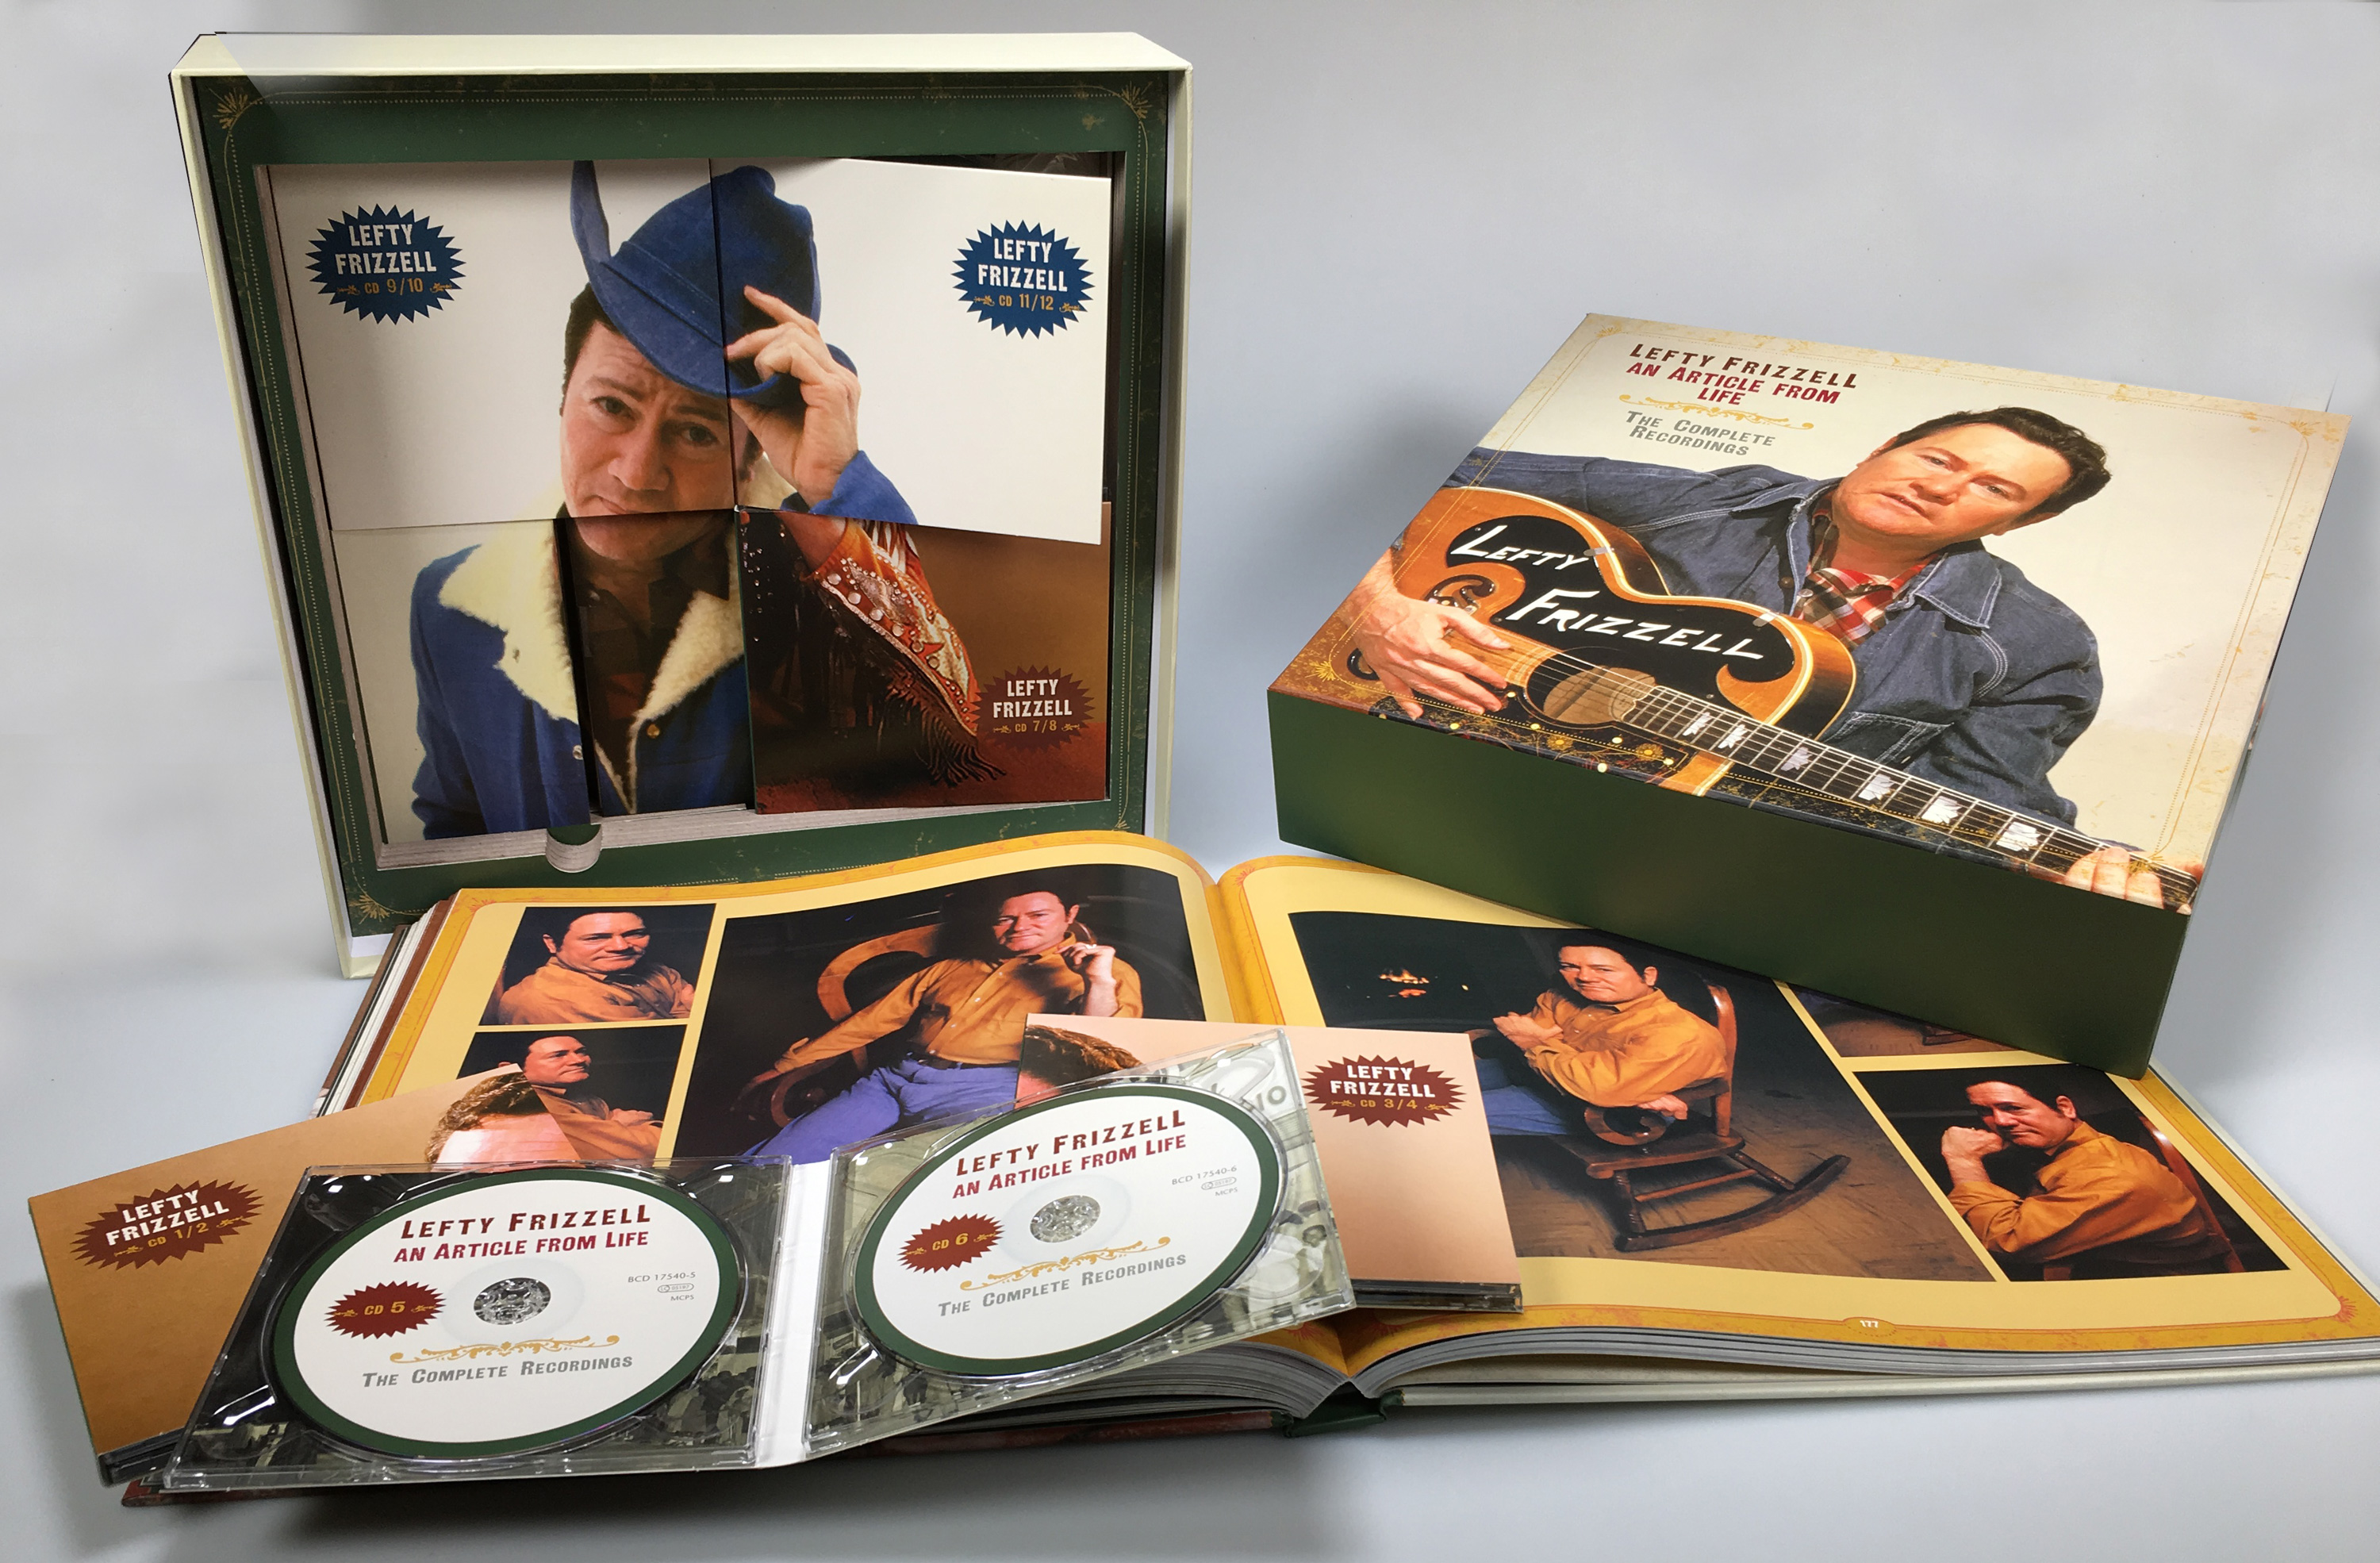 43d09ad97855b Vorschau  An Article From Life - The Complete Recordings (20-CD Deluxe Box  ...